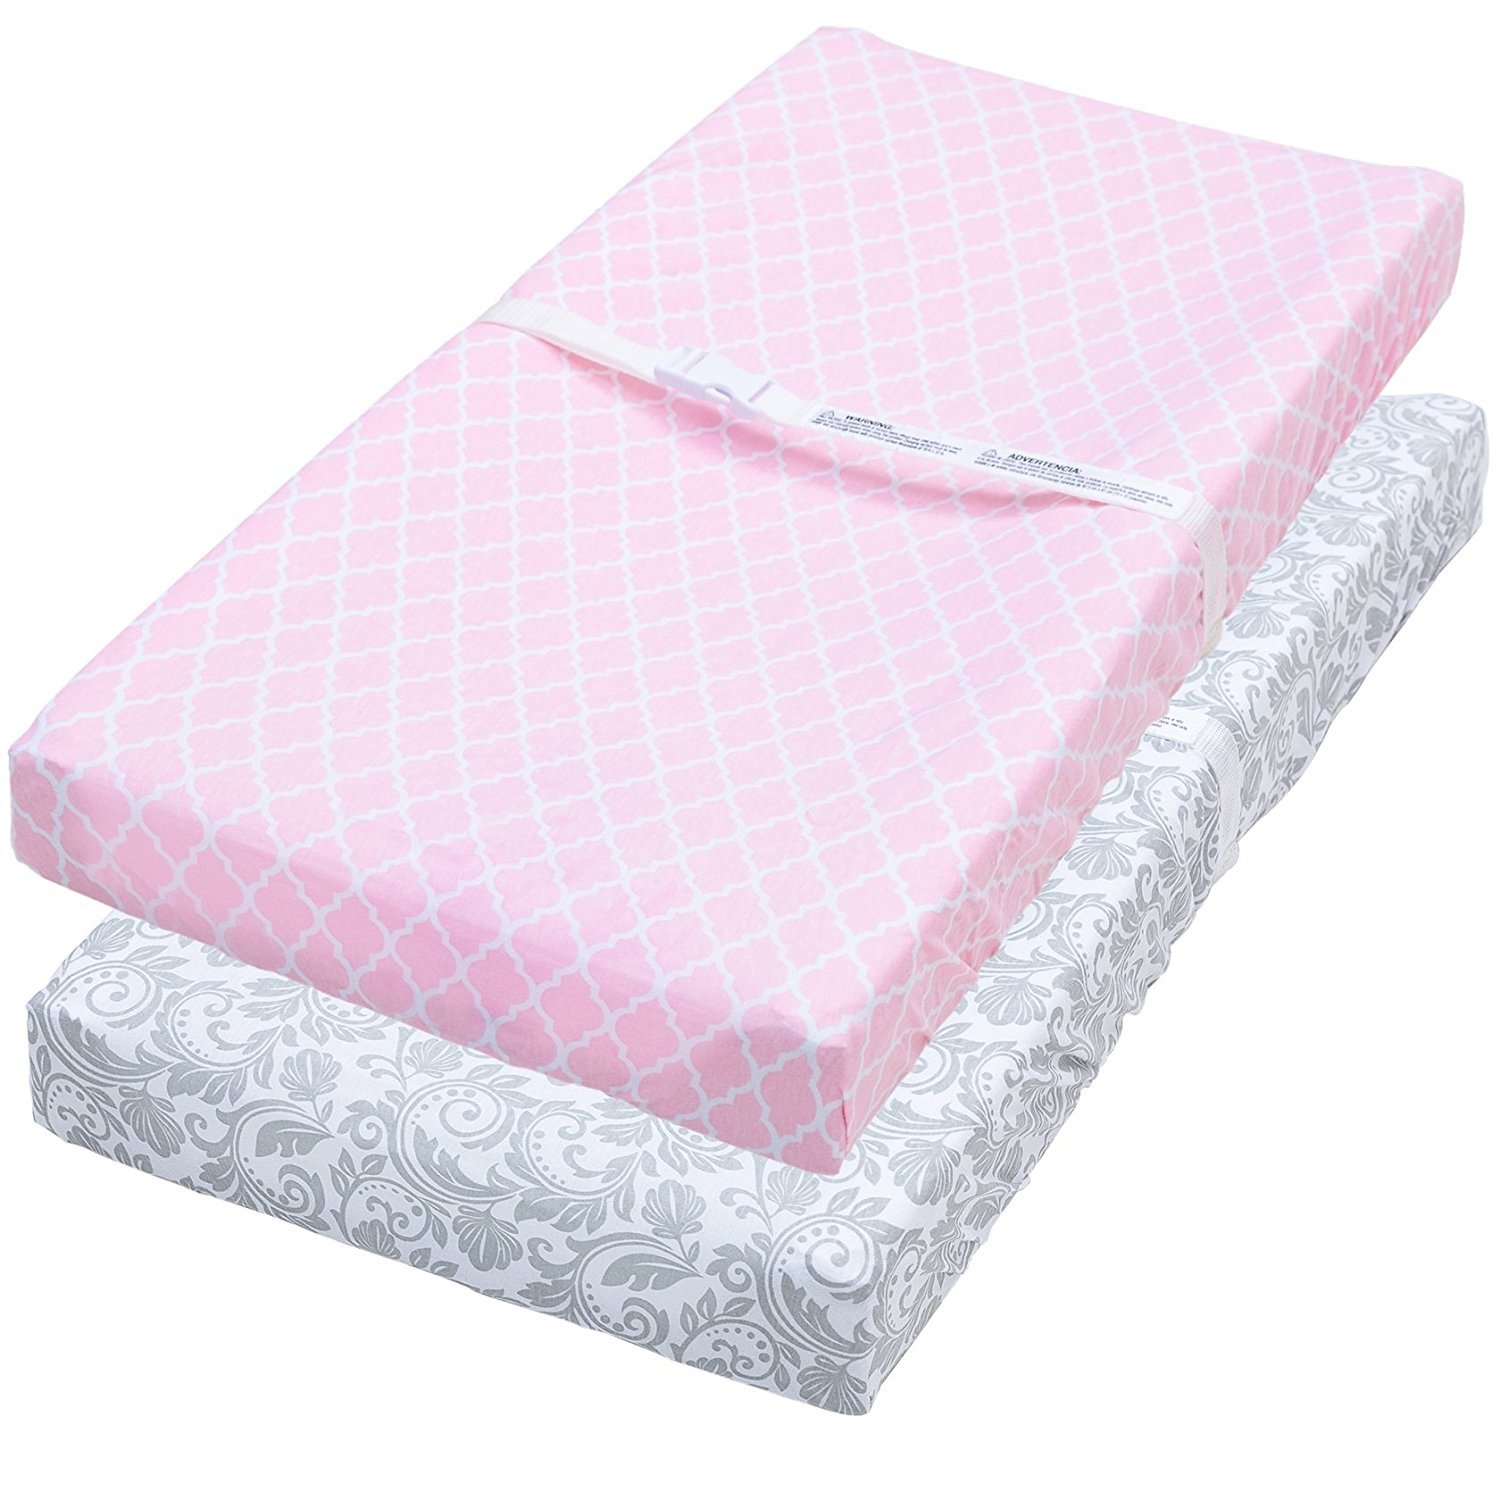 Changing Pad Cover, 2 Pack Pink Quatrefoil/Gray Floral Fitted Soft Jersey Cotton Jomolly